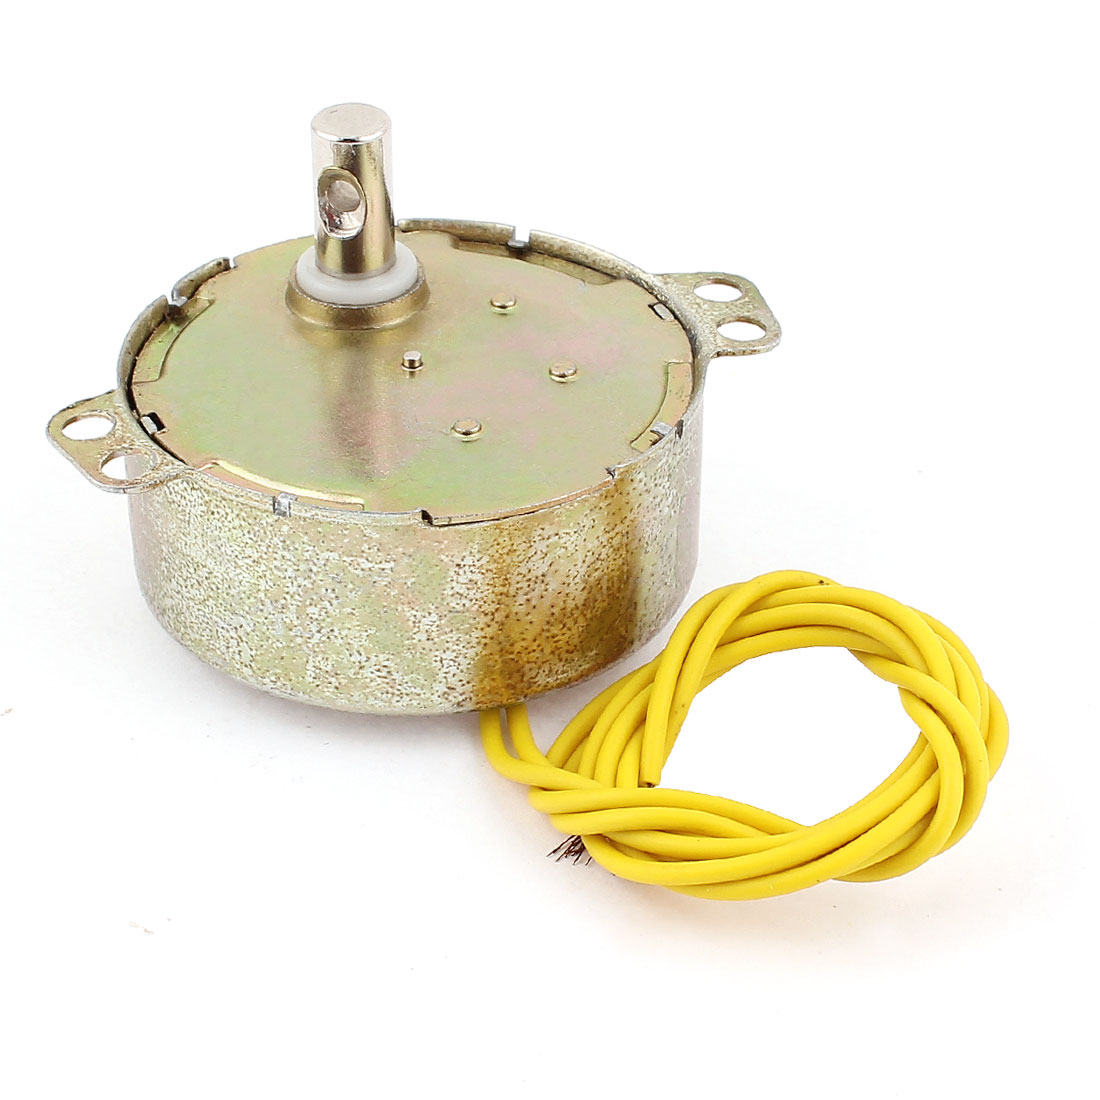 AC 220-240V 5/6RPM CW/CCW TYJ50 Microwave Oven Turntable Synchronous Motor